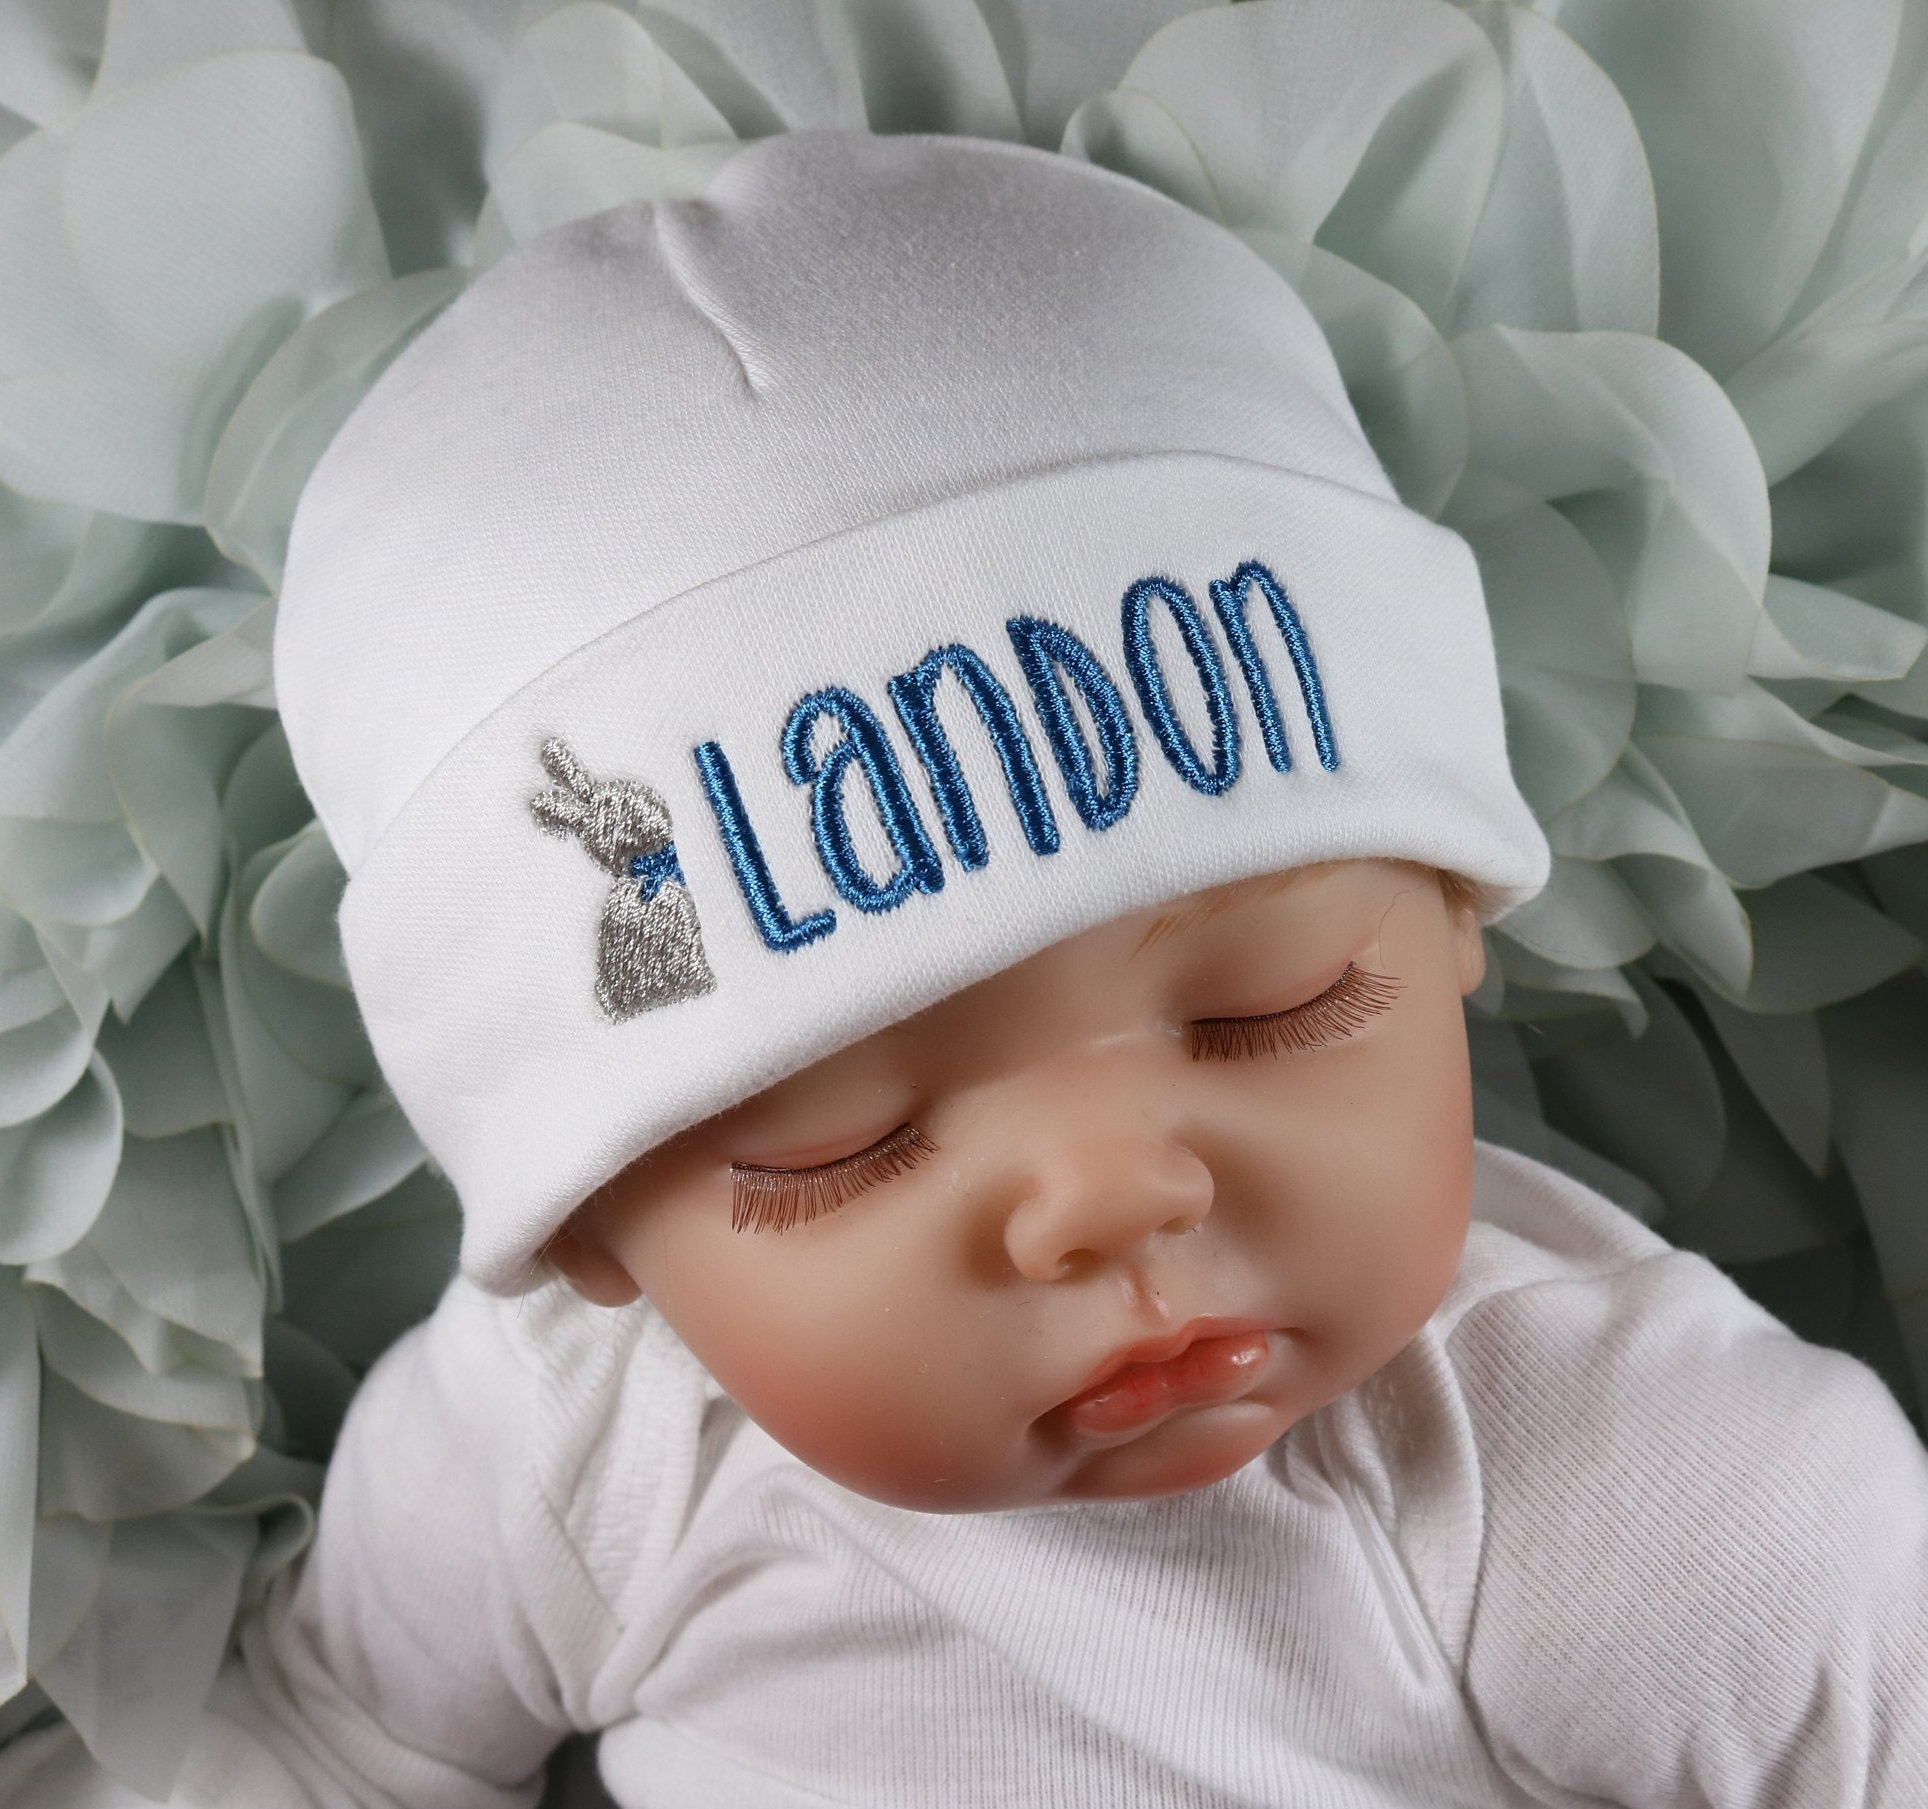 bbe5f3fe5beaa Personalized baby hat with Easter bunny micro preemie